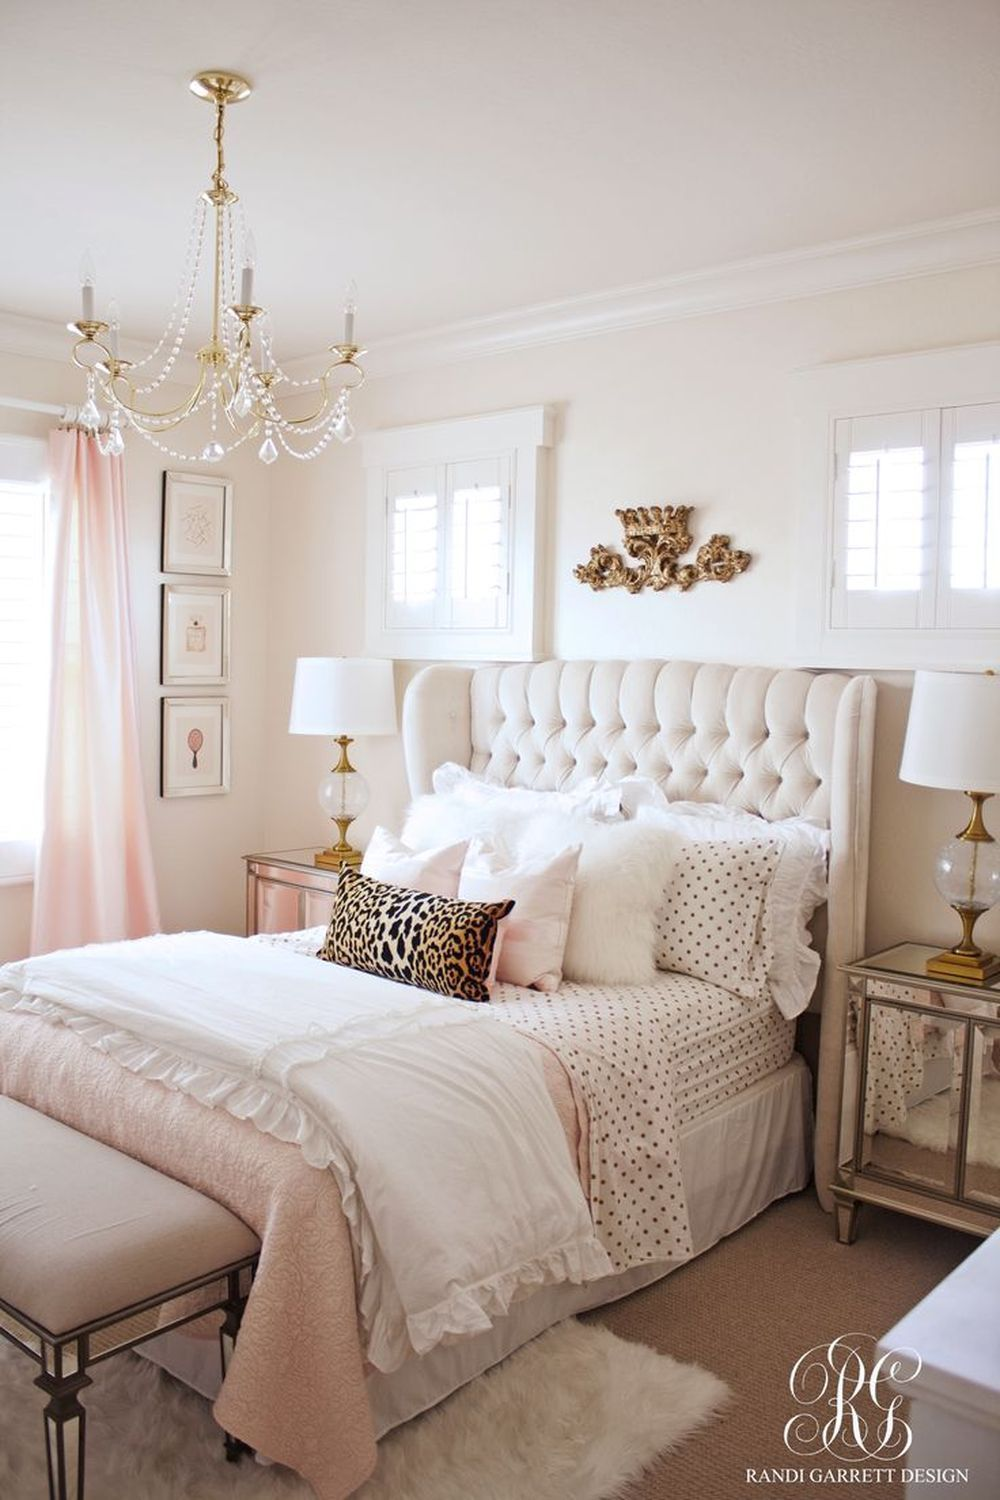 49 Romantic Bedroom Decor Ideas to Make Your Home More Stylish ...